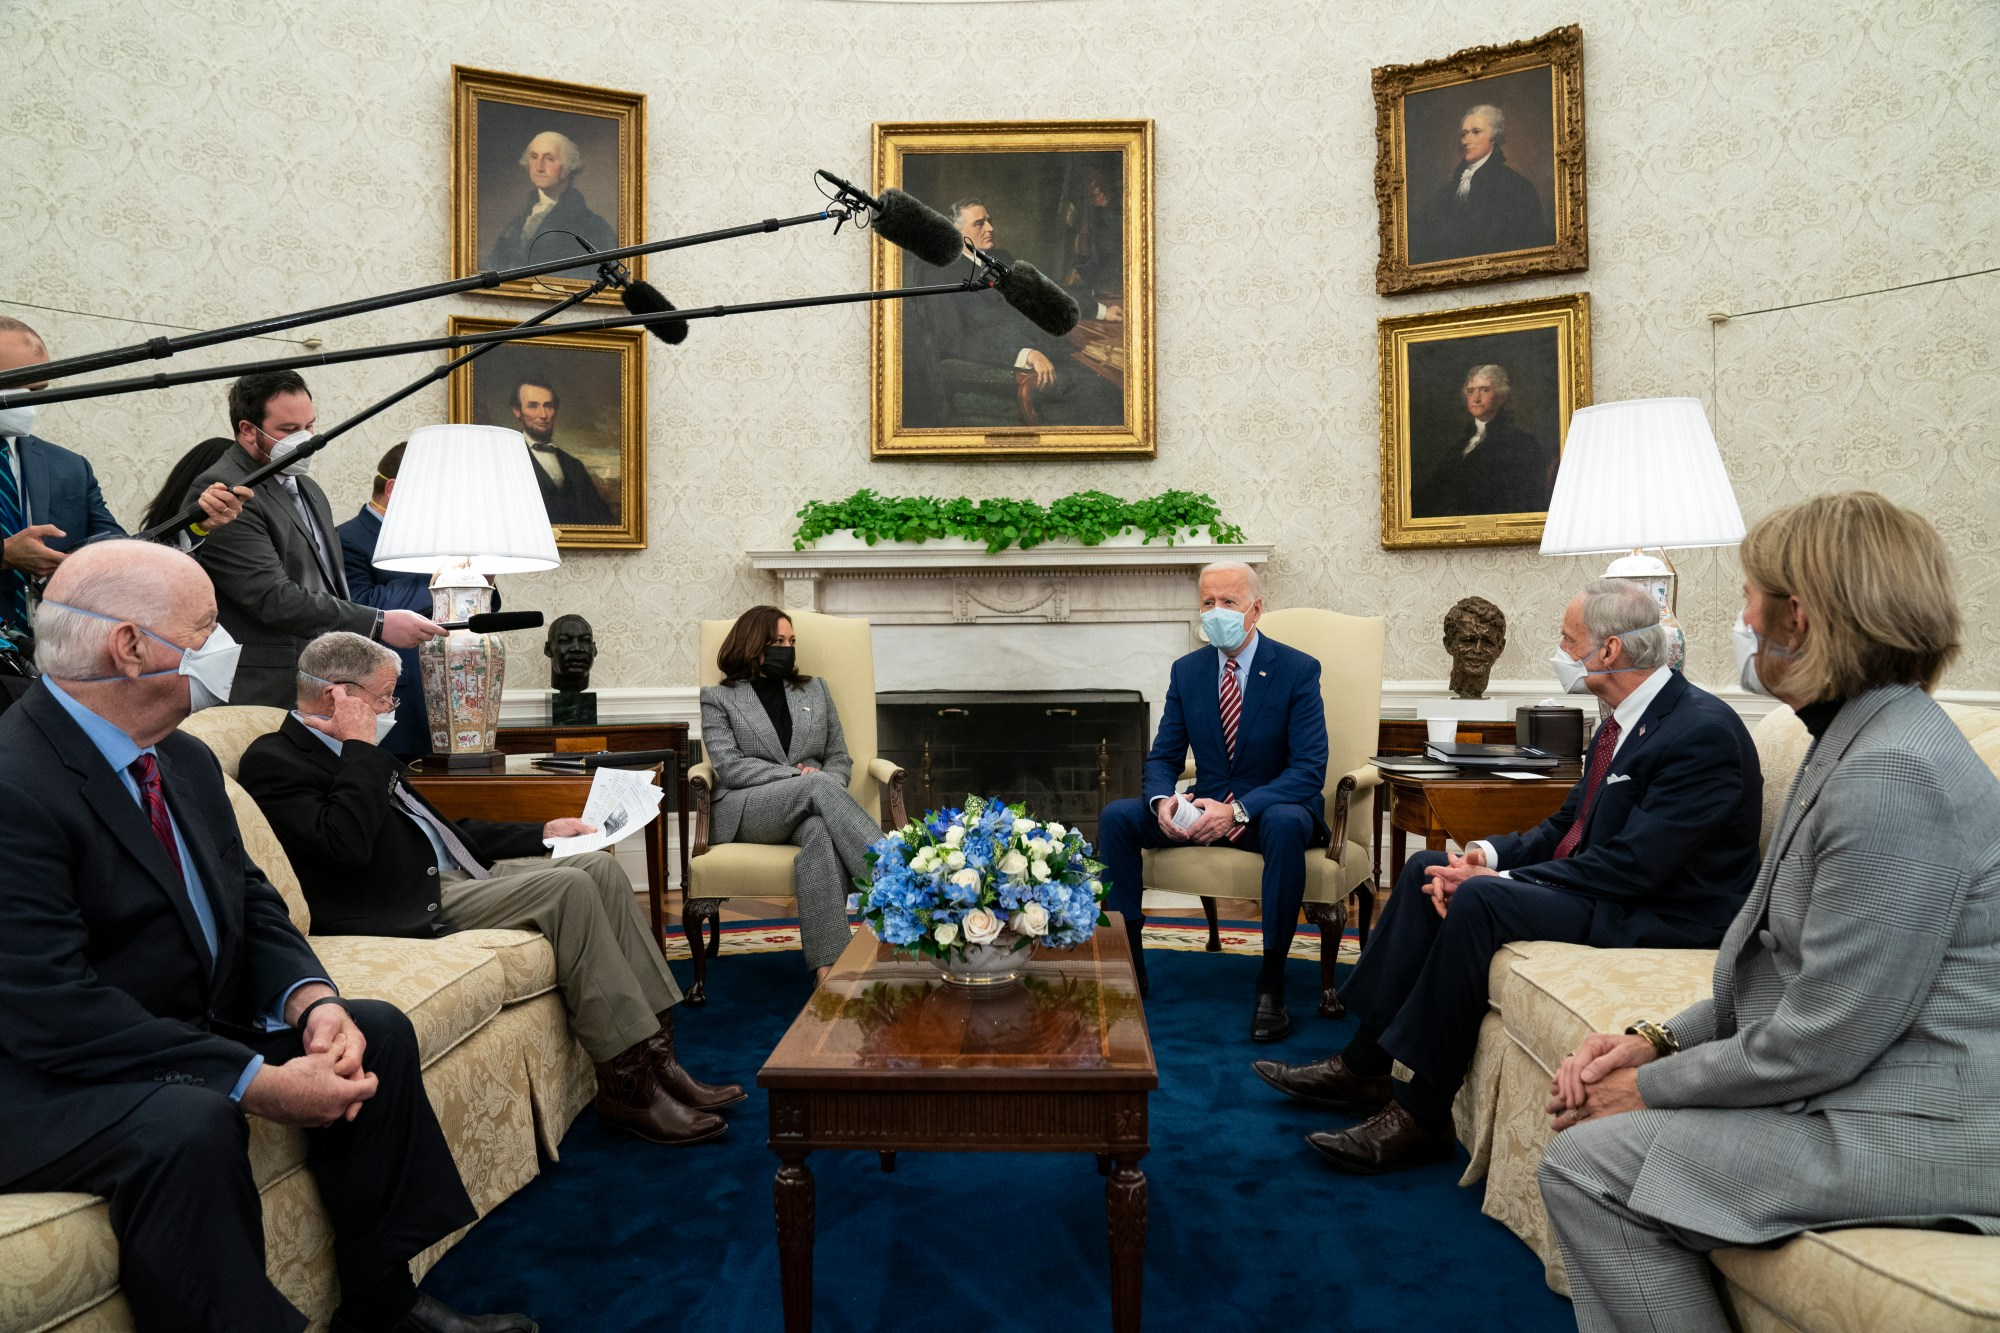 In this Feb. 11, 2021, file photo President Joe Biden speaks during a meeting with lawmakers on investments in infrastructure, in the Oval Office of the White House in Washington. From left, Sen. Ben Cardin, D-Md., Sen. Jim Inhofe, R-Okla., Vice President Kamala Harris, Biden, Sen. Tom Carper, D-Del., and Sen. Shelley Moore Capito, R-W.Va. Looking beyond the $1.9 trillion COVID relief bill, Biden and lawmakers are laying the groundwork for another of his top legislative priorities — a long-sought boost to the nation's roads, bridges and other infrastructure that could meet GOP resistance to a hefty price tag. (AP Photo/Evan Vucci, File)